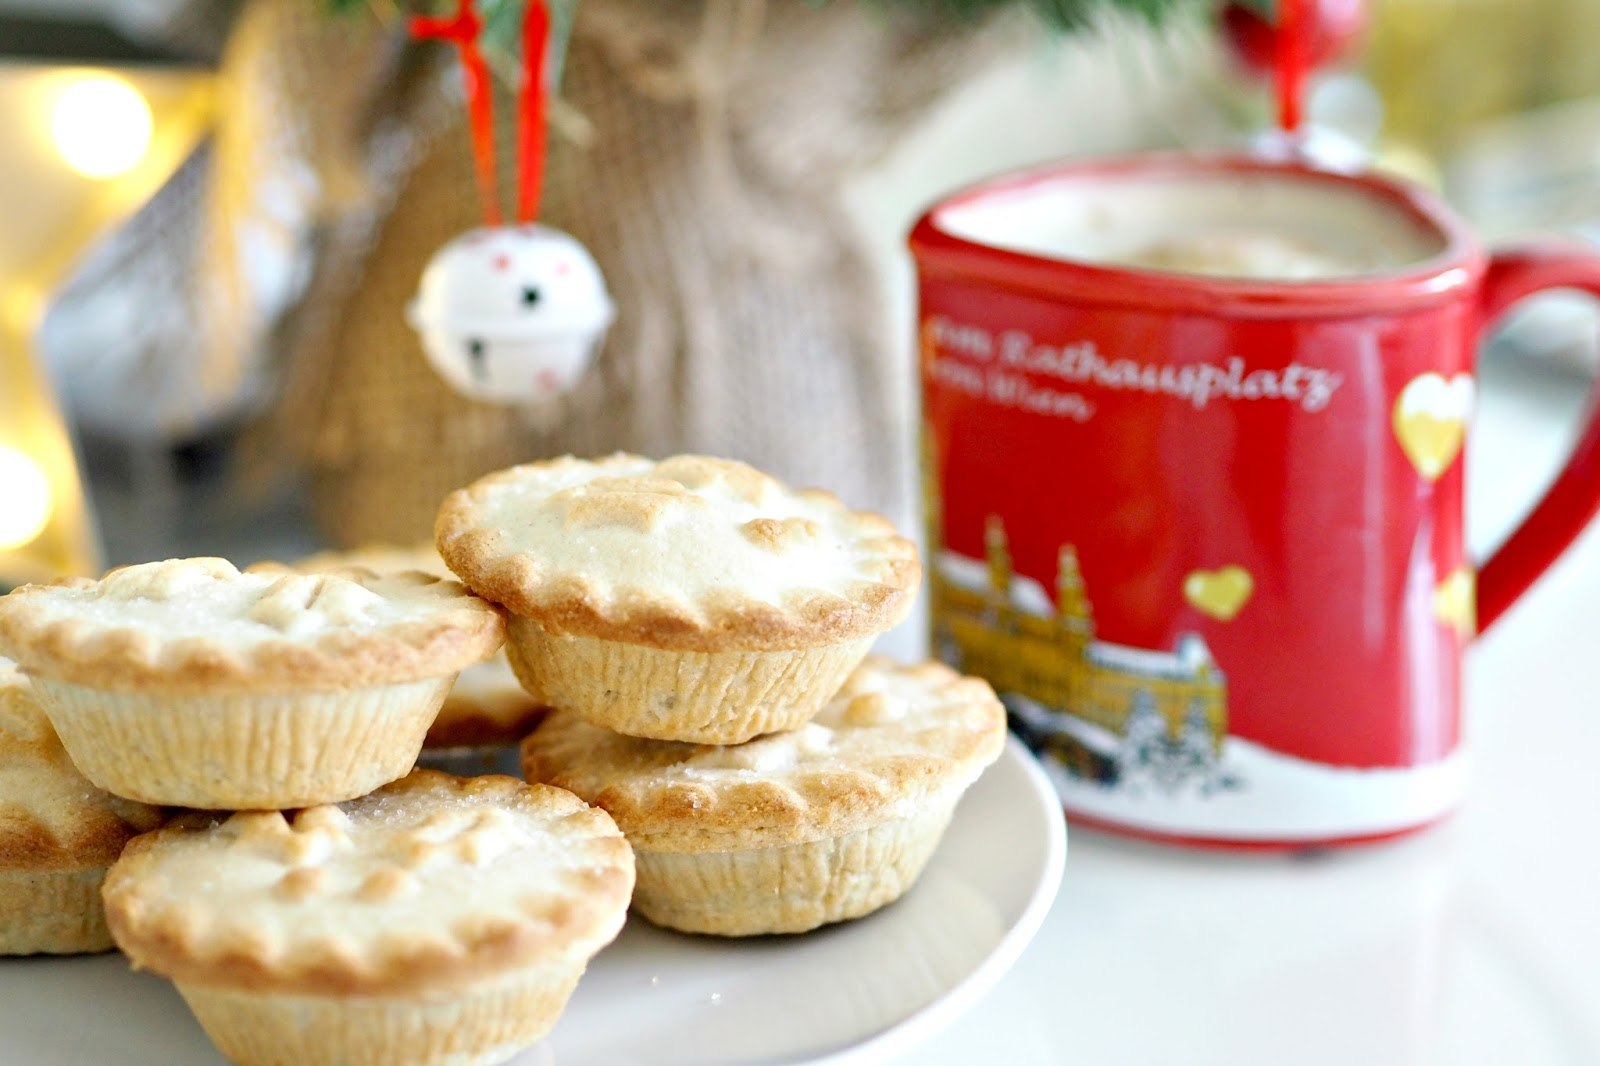 My christmas bucket list, mince pies and mulled wine